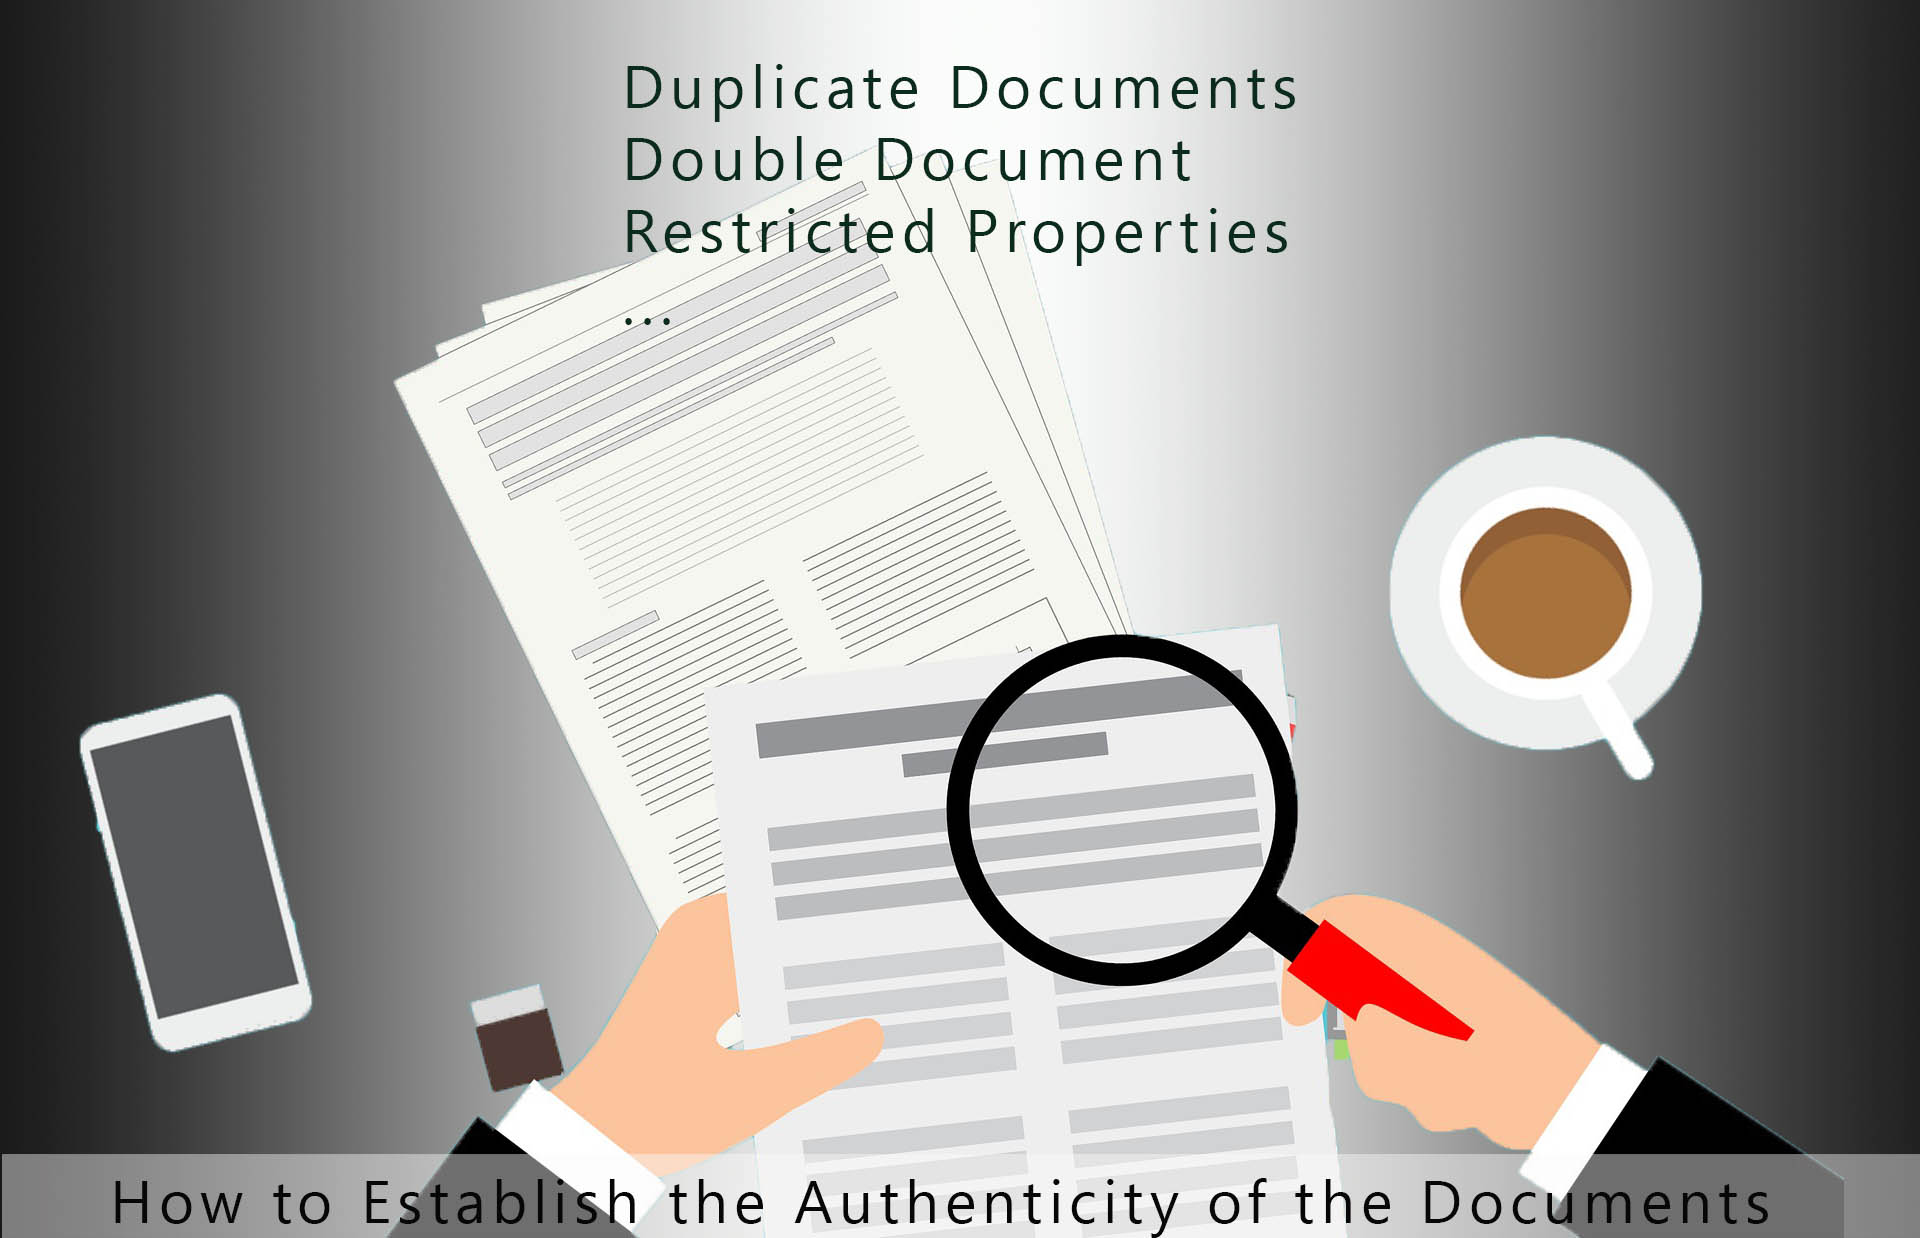 Duplicate and Double Documents